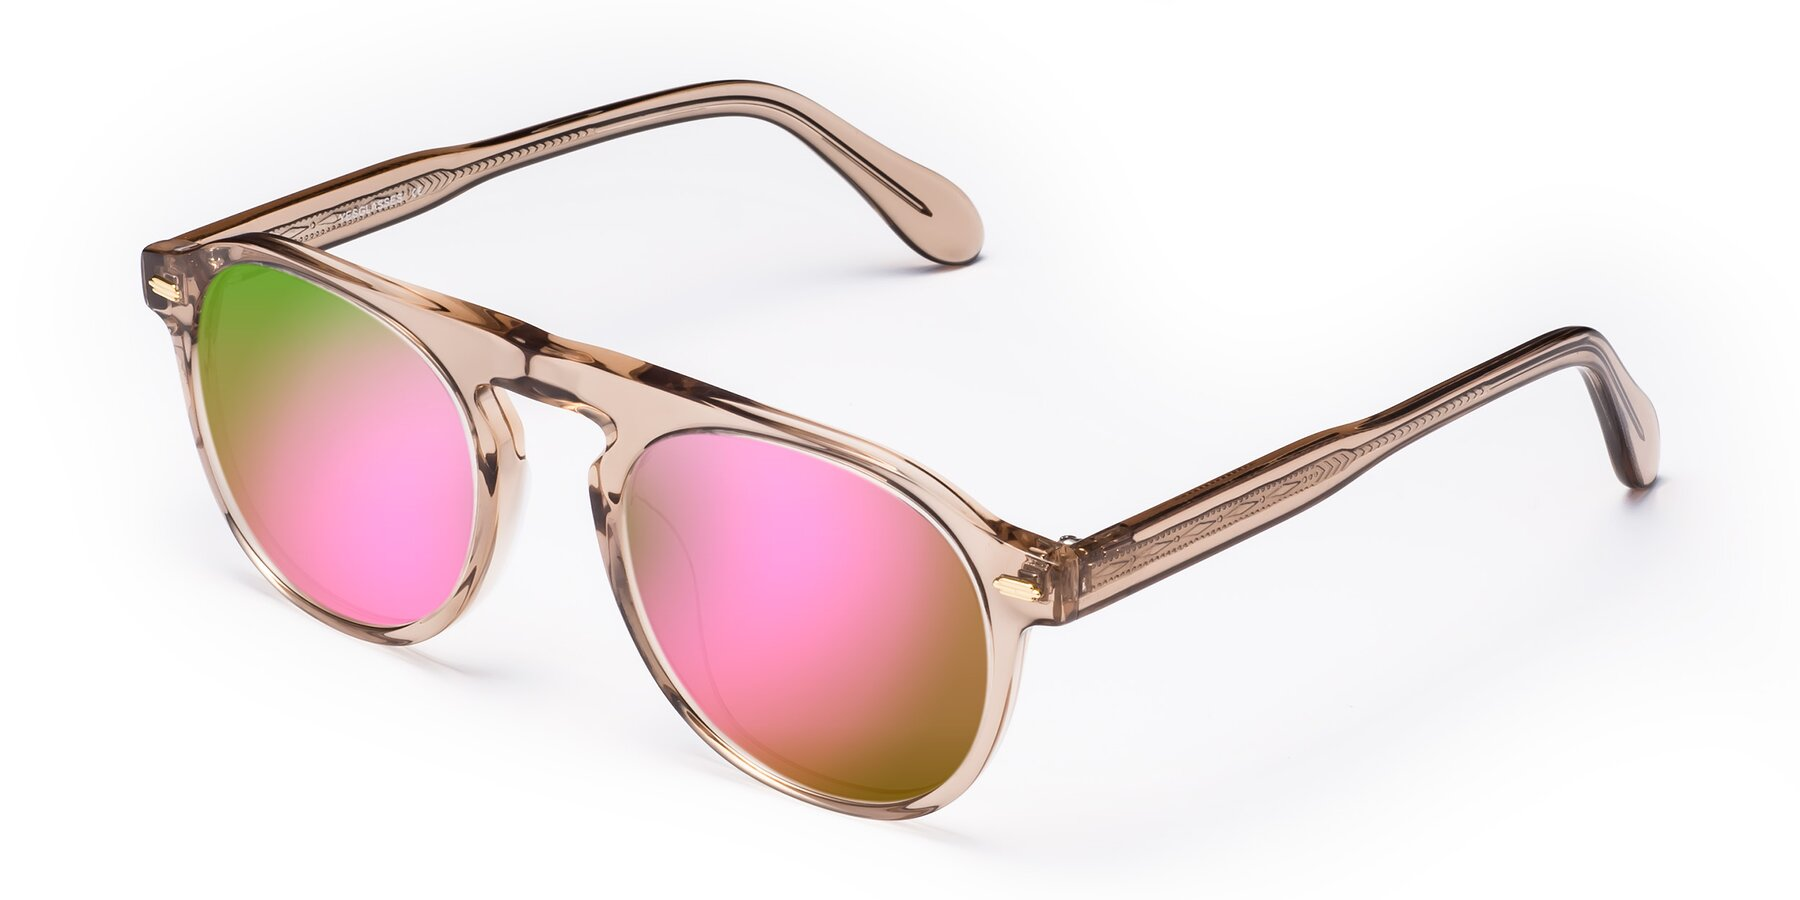 Angle of Mufasa in light Brown with Pink Mirrored Lenses